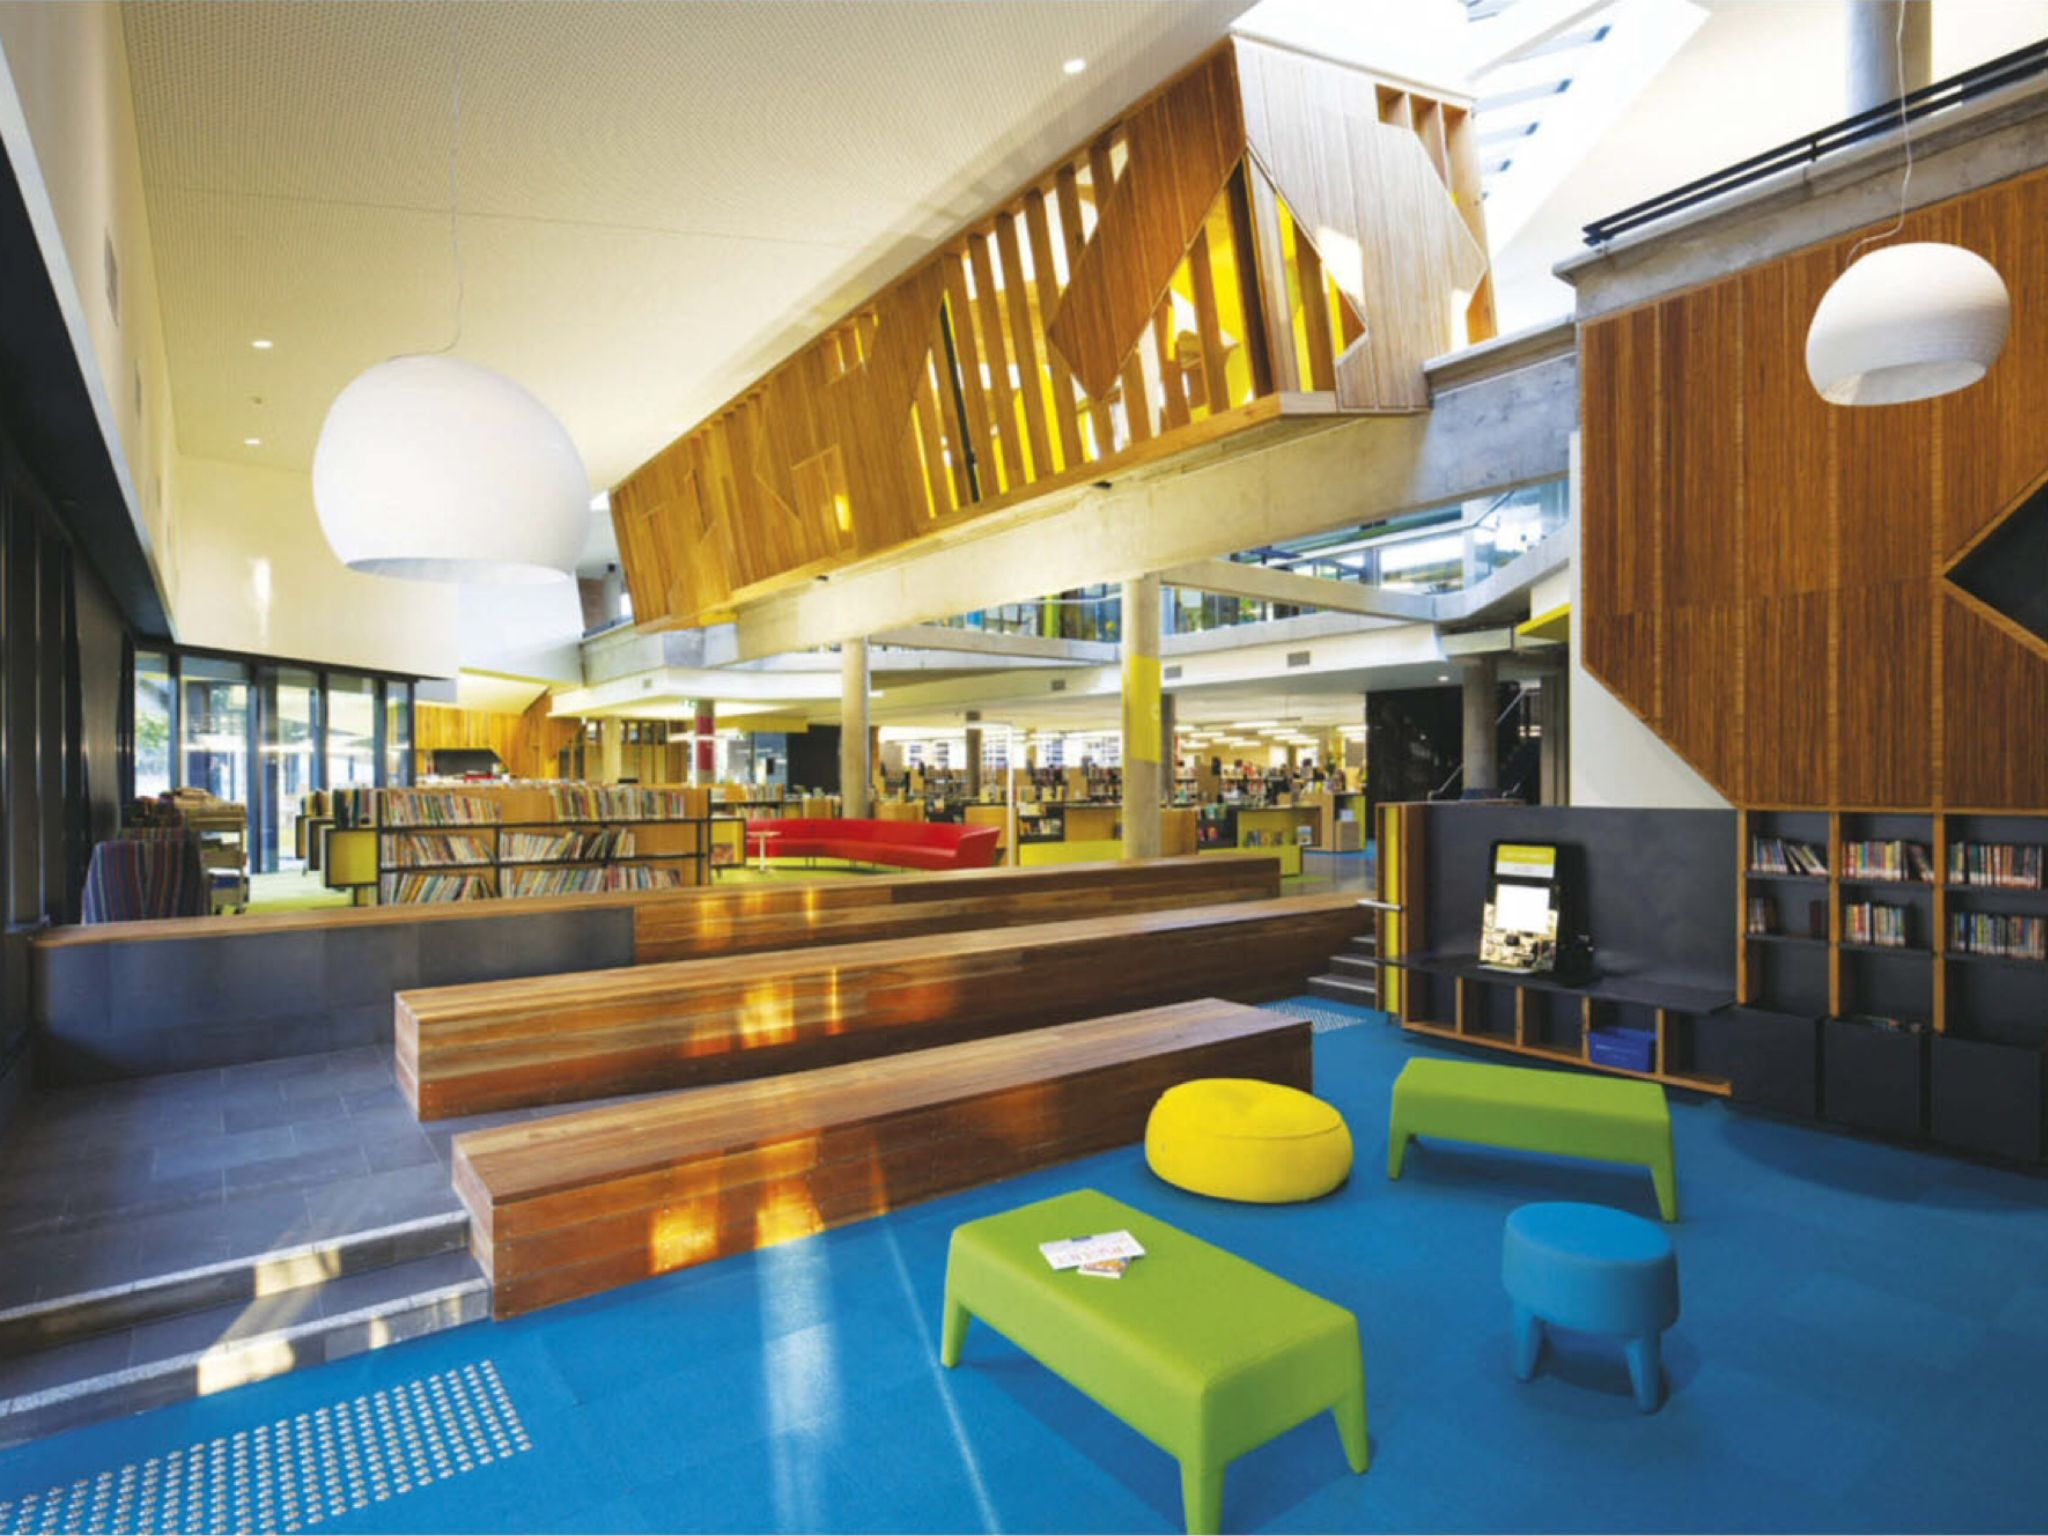 Bendigo Library Interior Design School Education Architecture